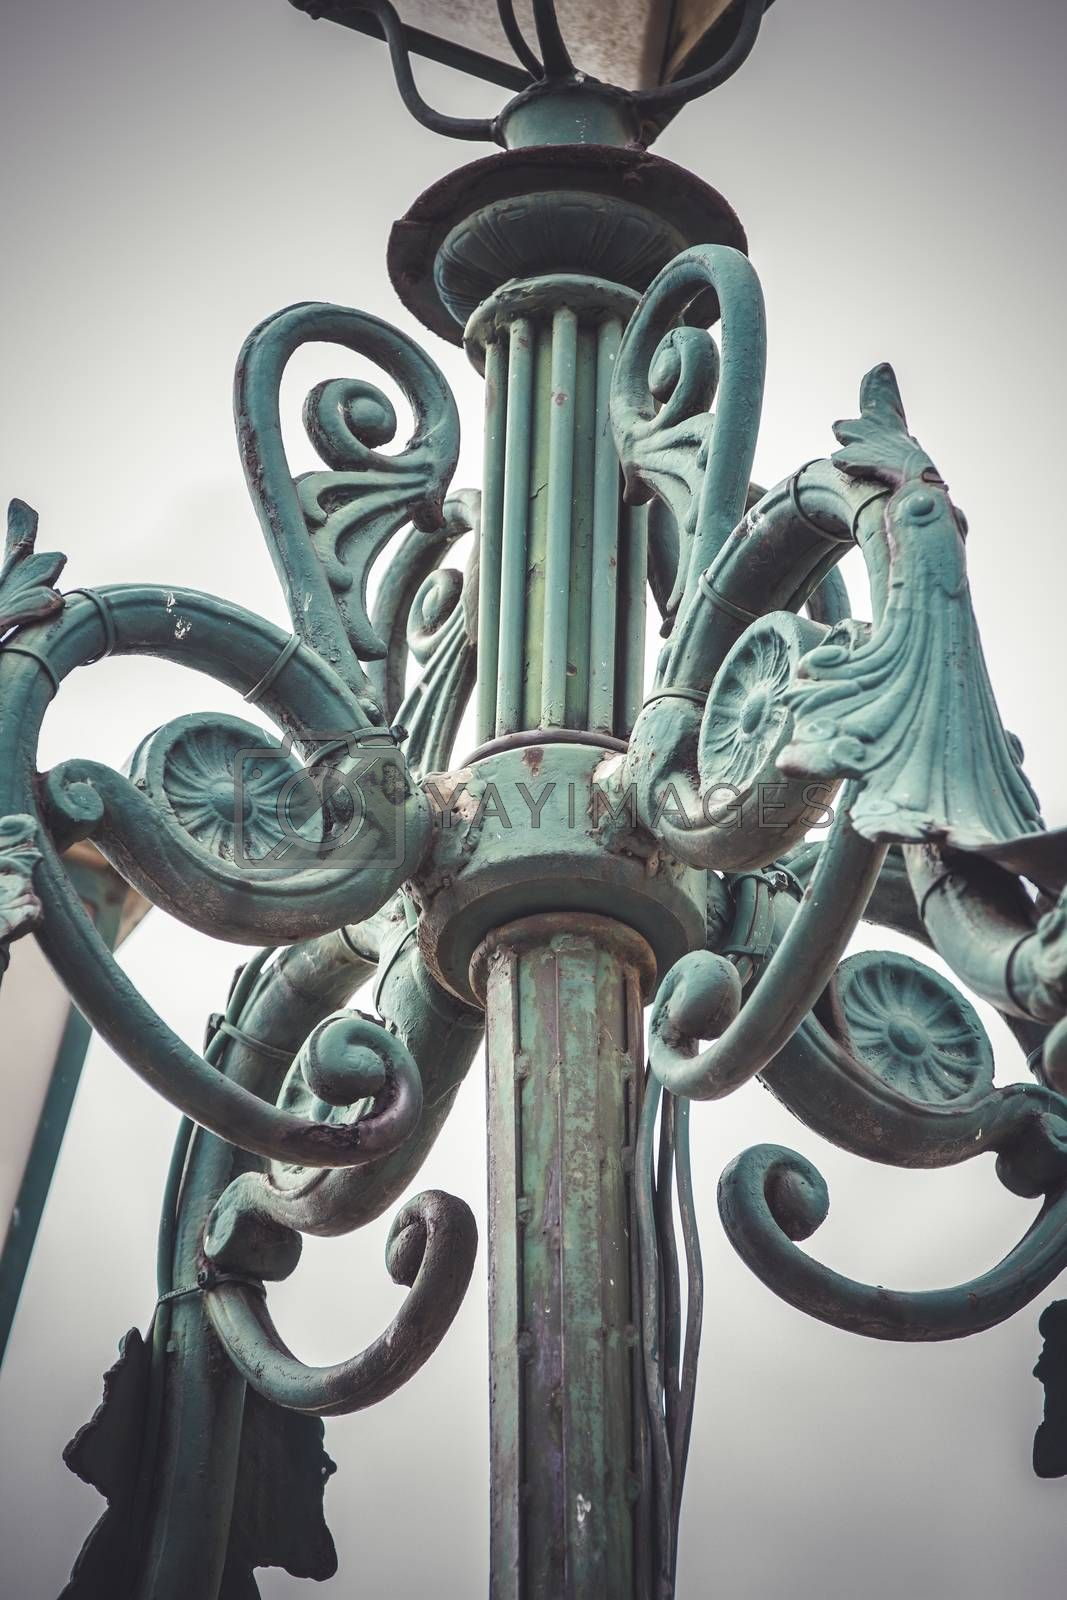 retro, traditional street lamp with decorative metal flourishes